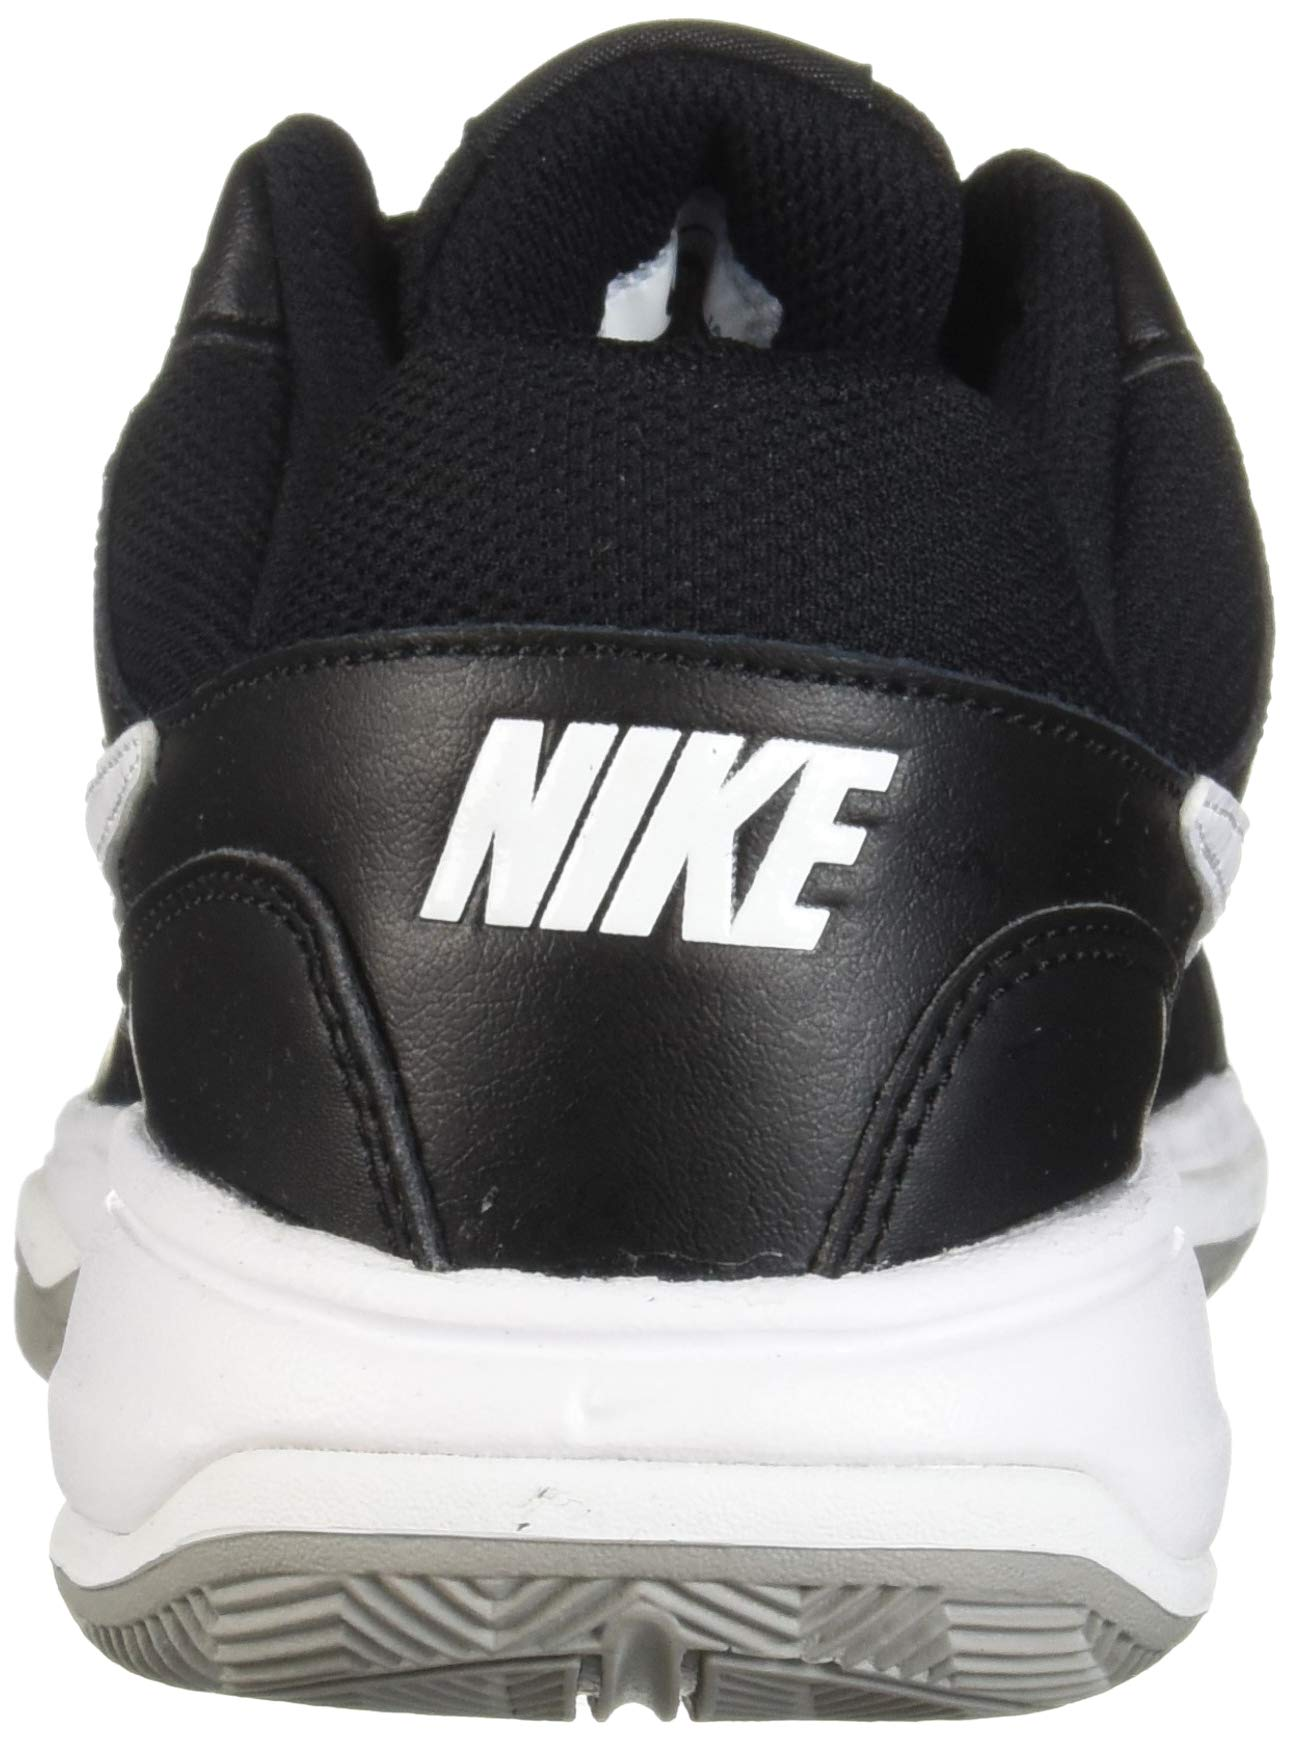 NIKE Men's Court Lite Athletic Shoe, Black/White/Medium Grey, 7.5 Regular US by Nike (Image #2)